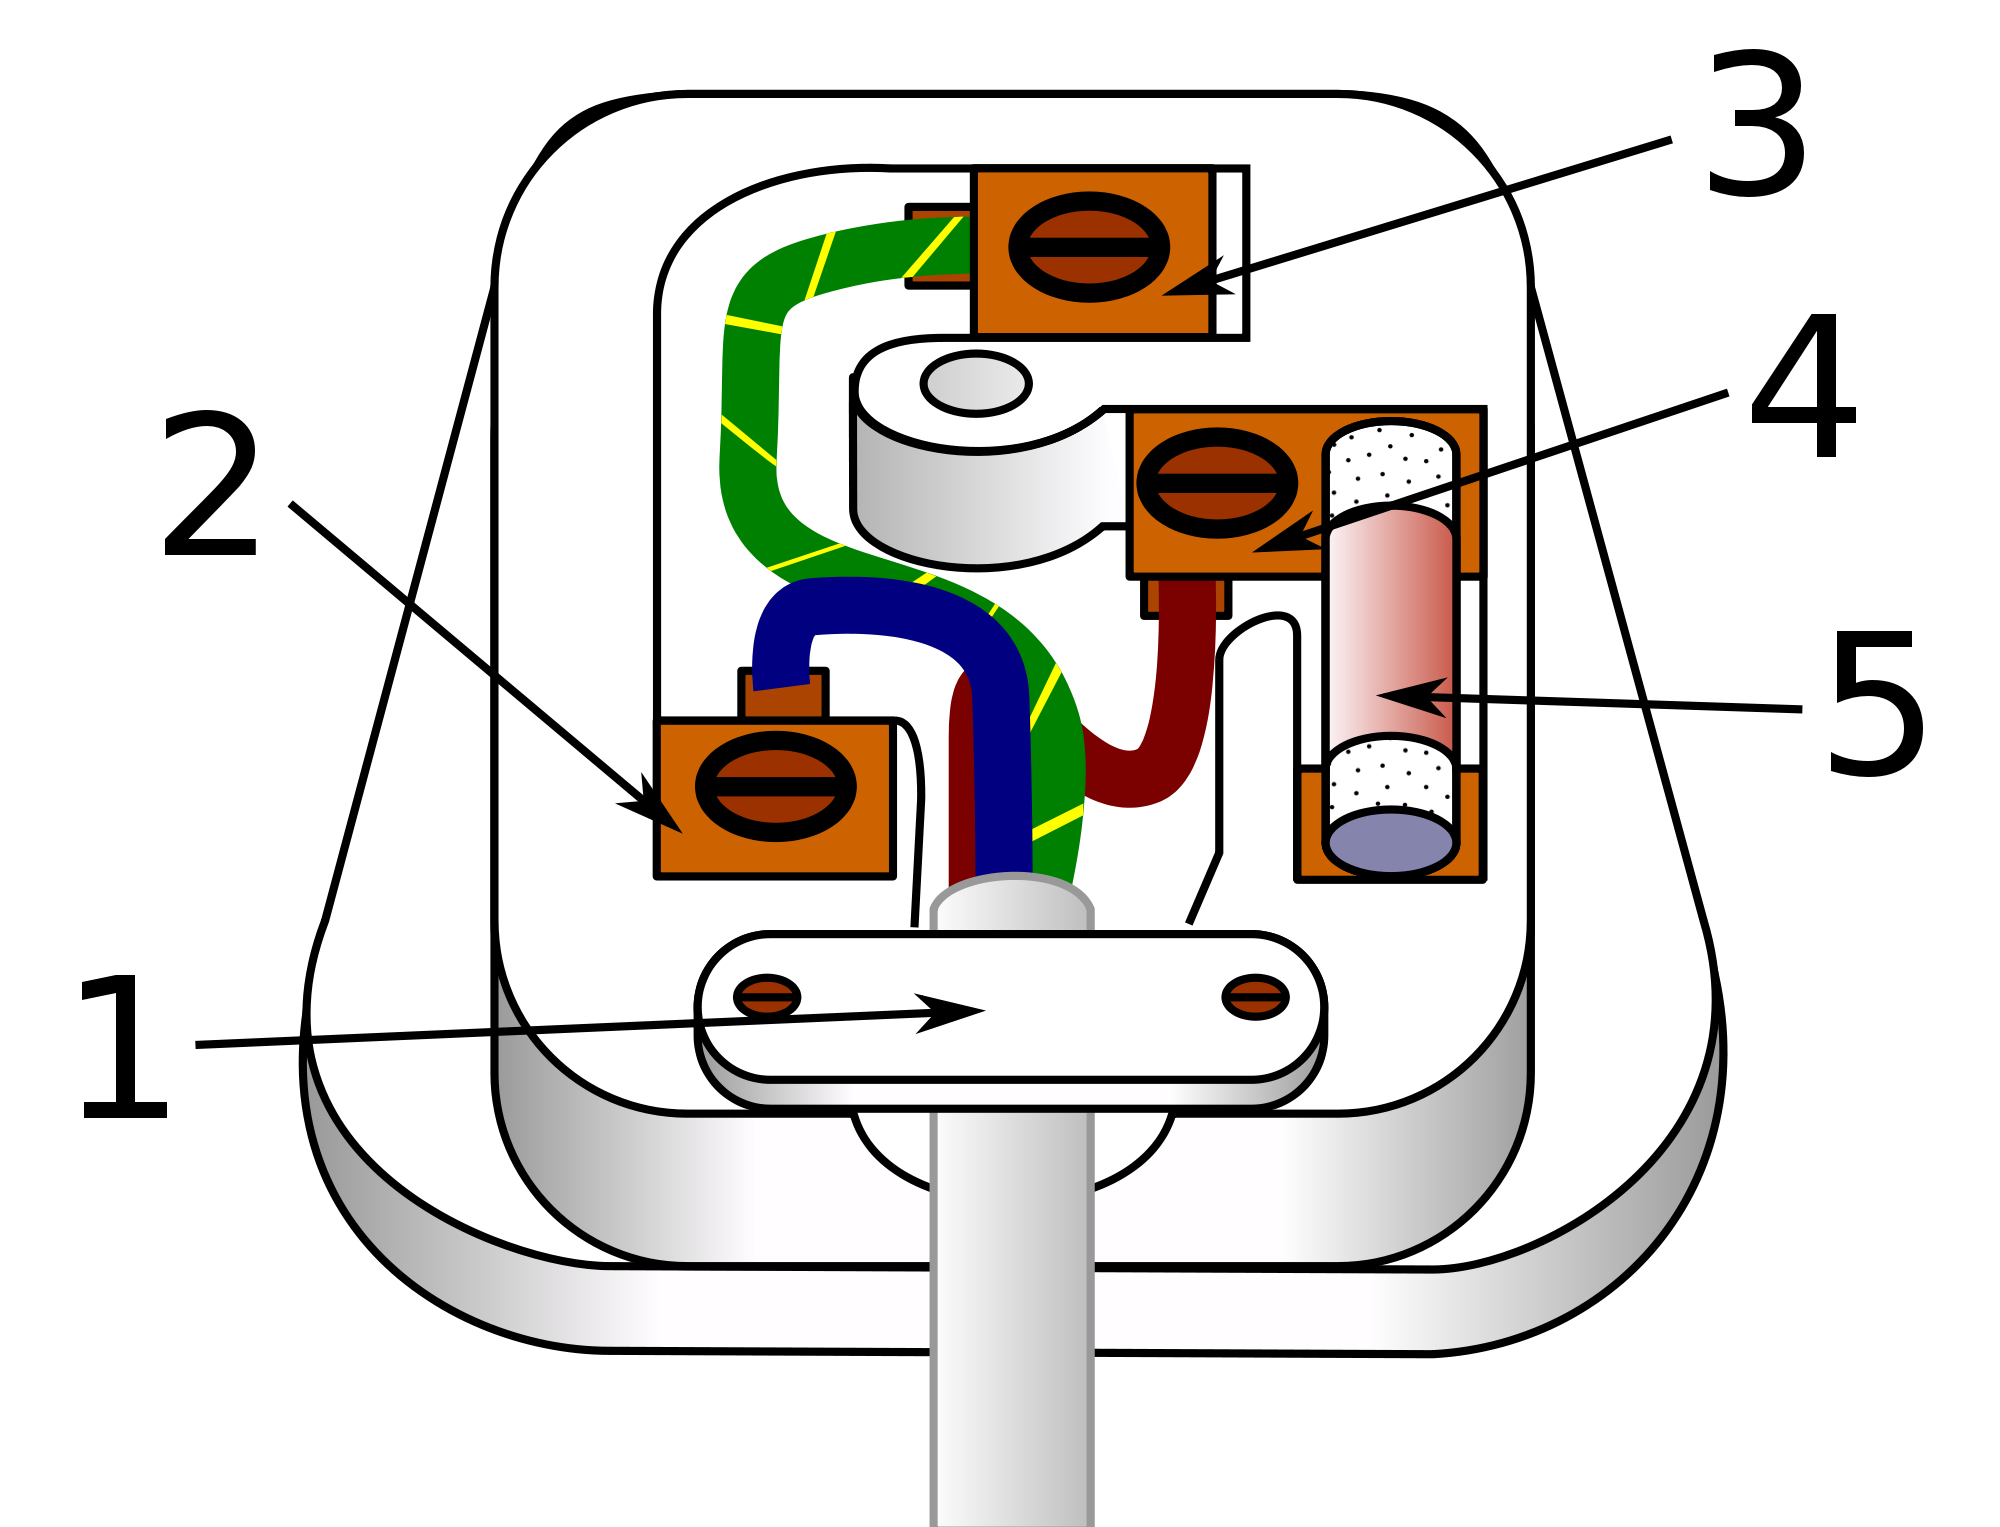 How to Wire a 3 Pin Plug - MMK Electricians Dublin